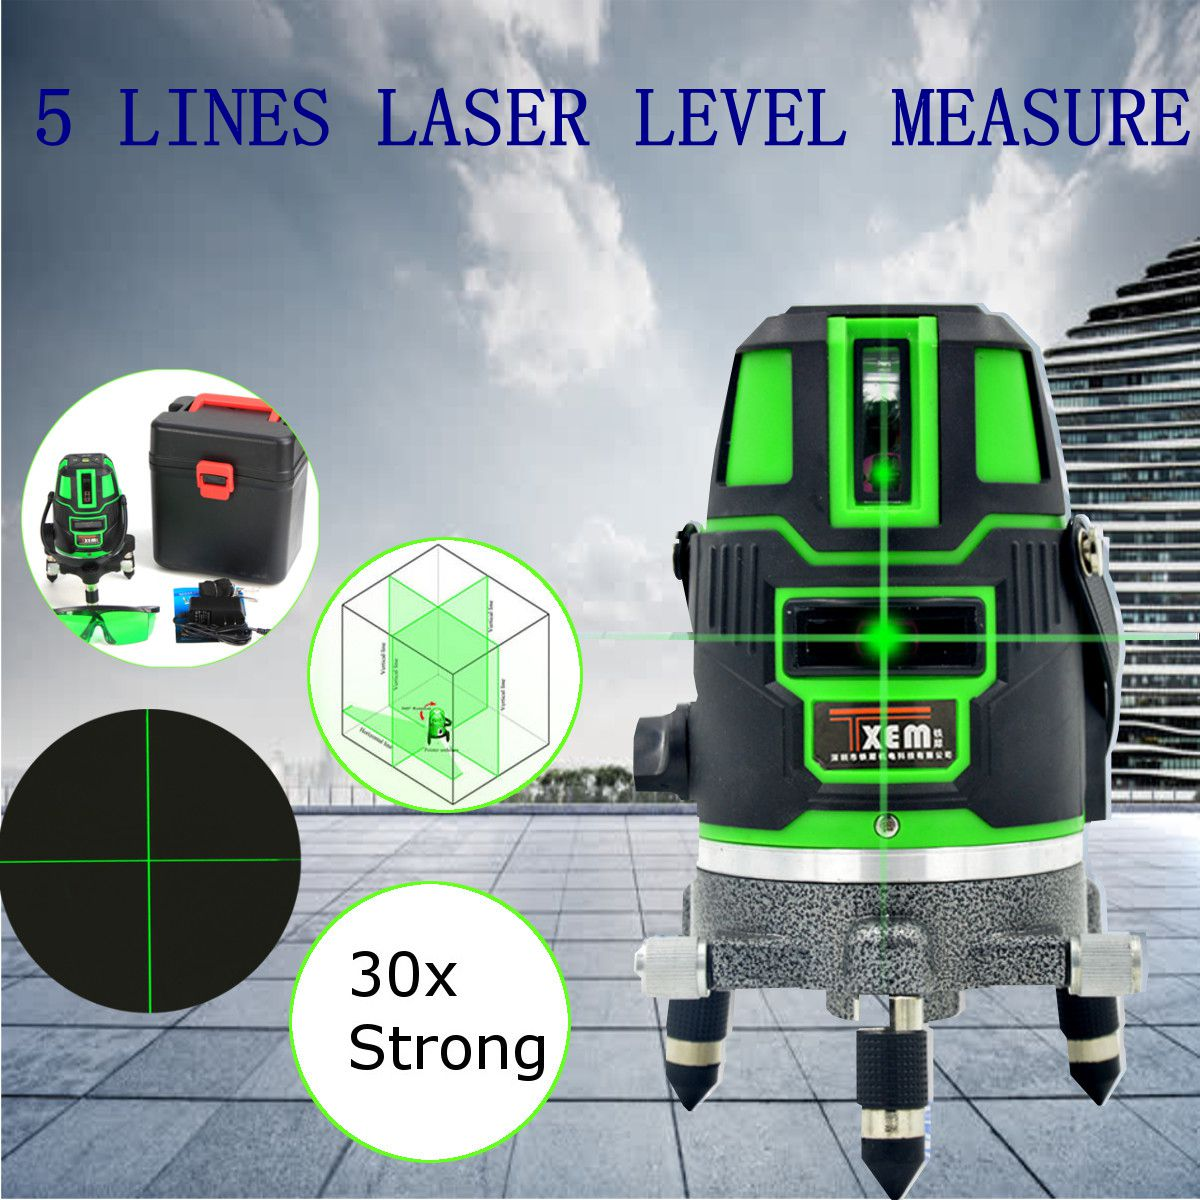 Green Beam Laser Level 5 Line Cross  30 Times Green Self  Leveling 360 Degree Rotary Outdoor Measuring Lazer Level Tools thyssen parts leveling sensor yg 39g1k door zone switch leveling photoelectric sensors